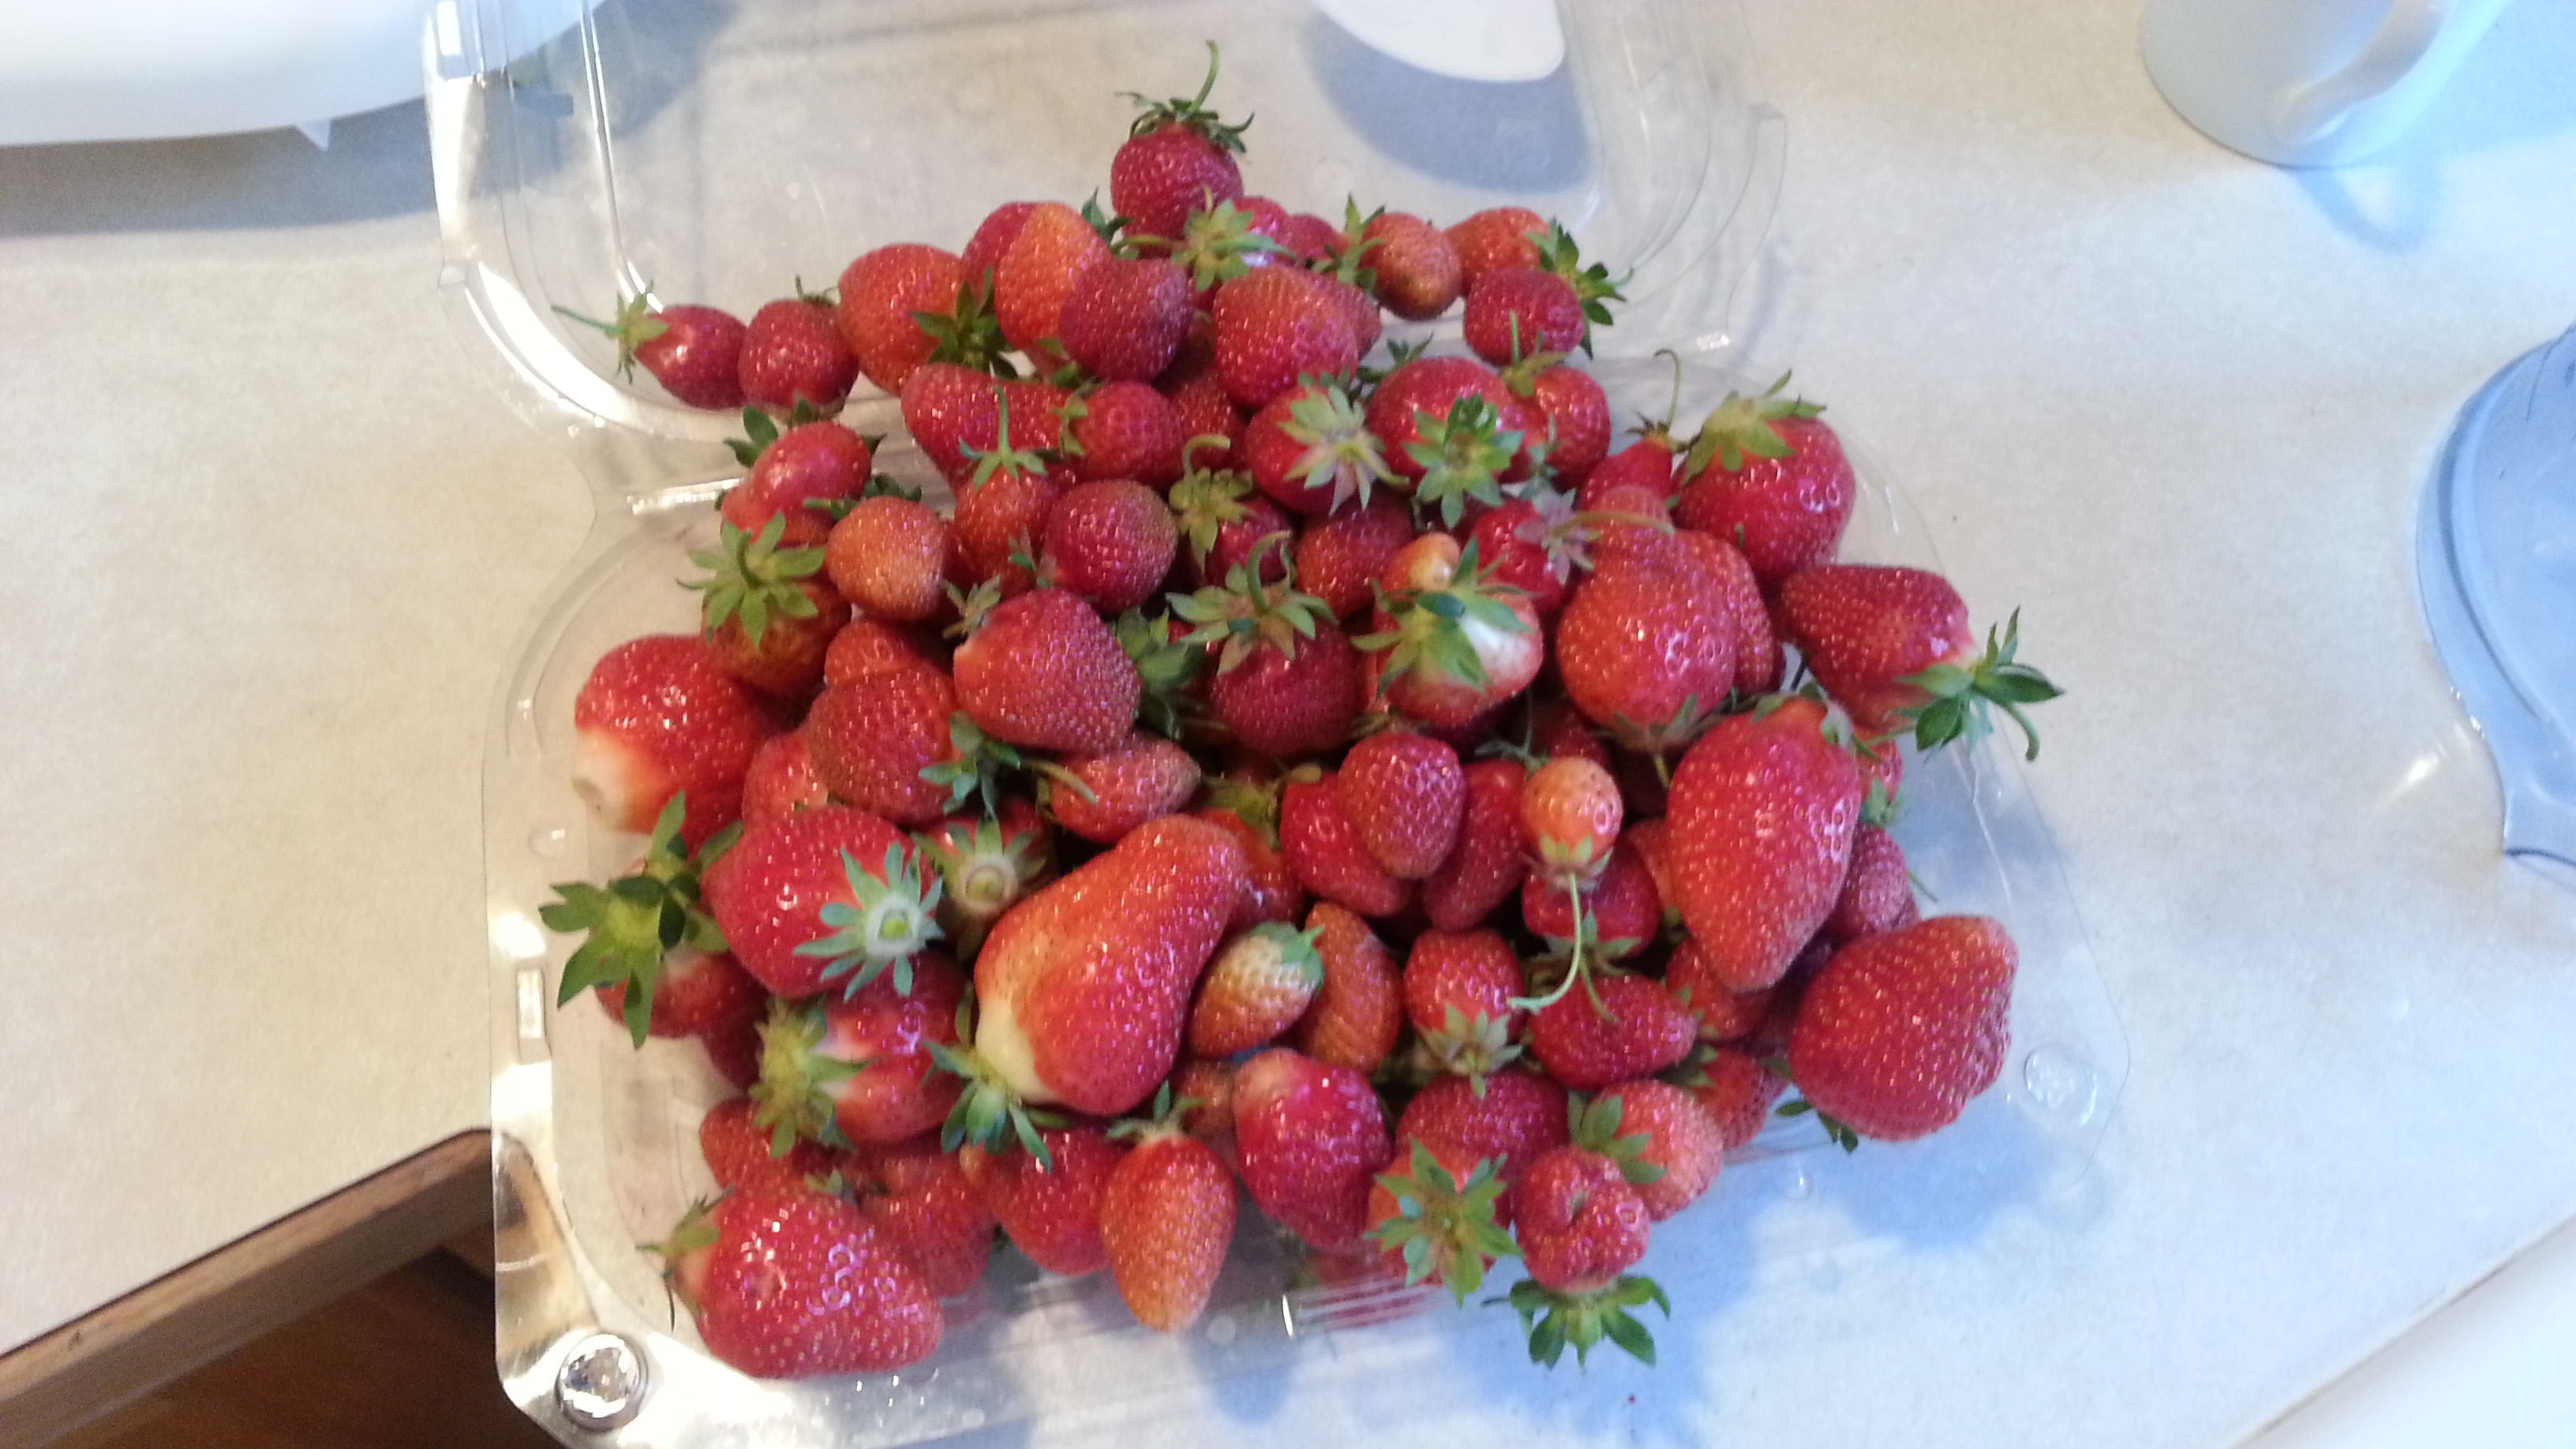 My strawberries yielded a nice harvest even though I had picked the day before!